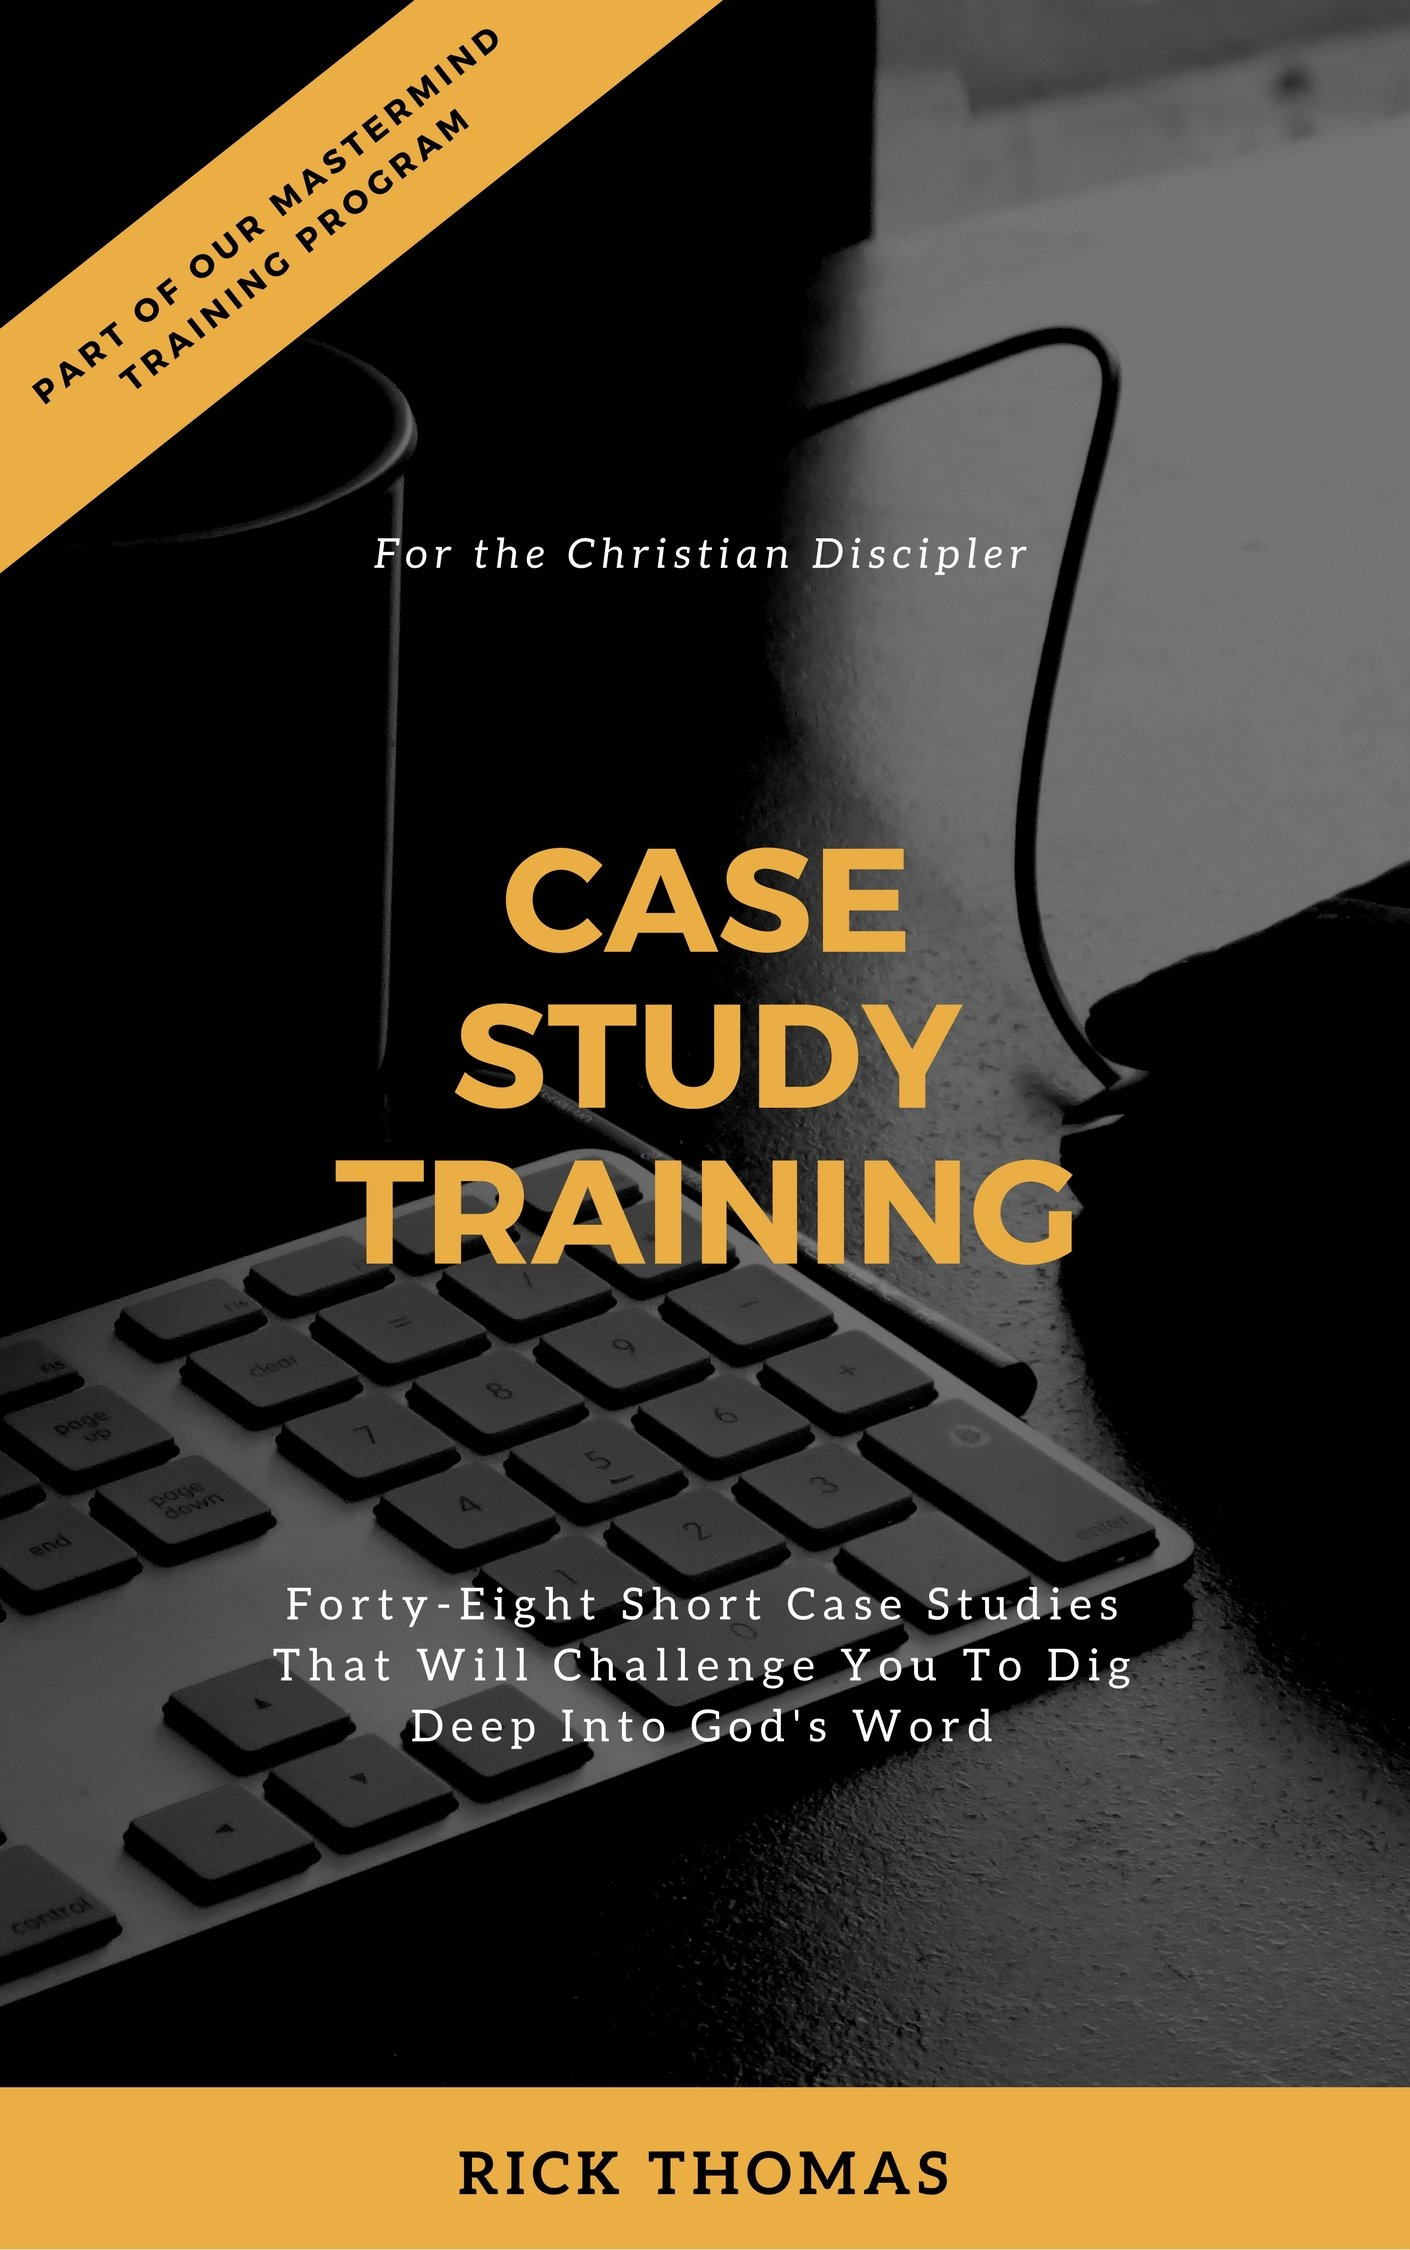 Case Study Training  Forty Eight Case Studies That Will Challenge You To Dig Deep Into God's Word  English Edition